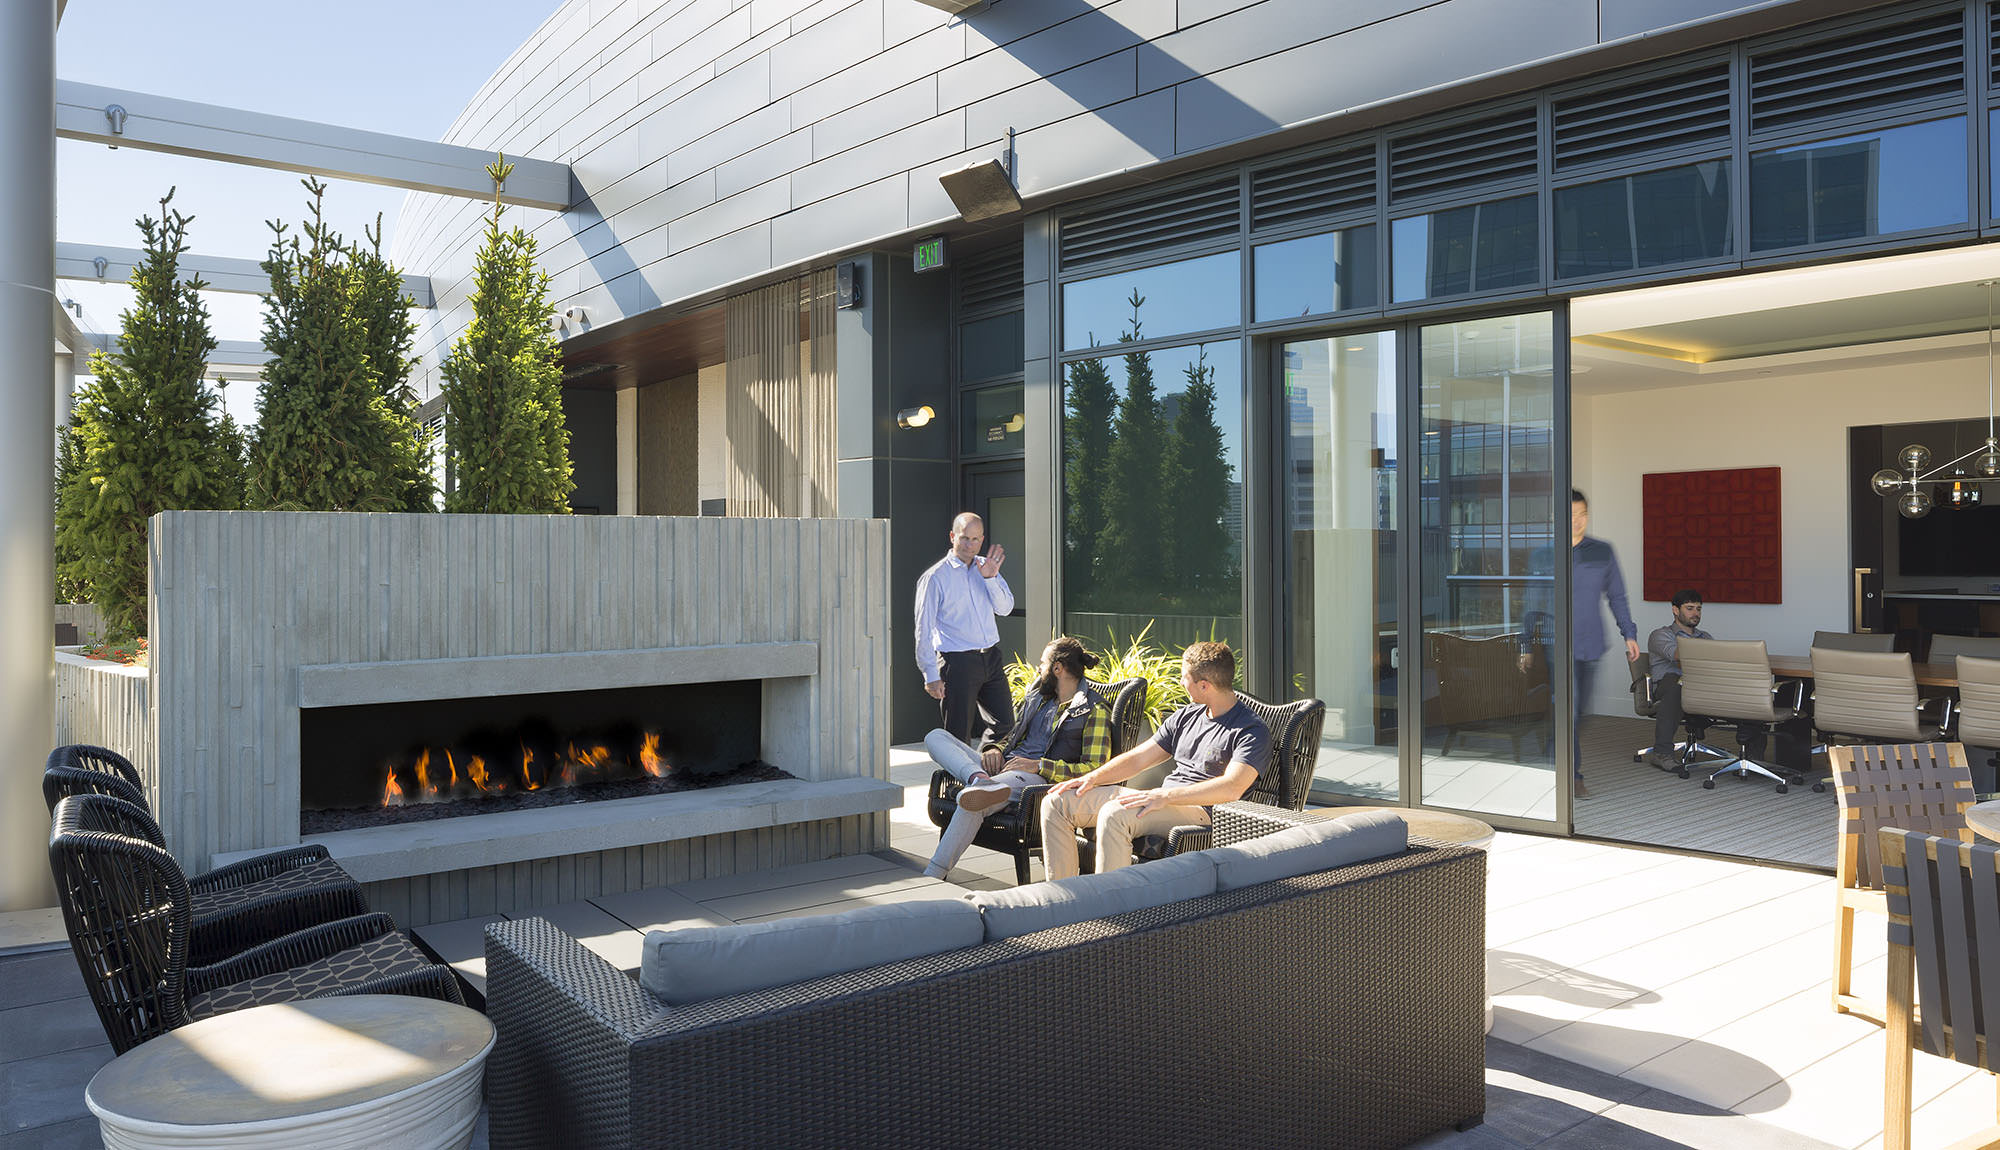 Cirrus's rooftop outdoor fireplace